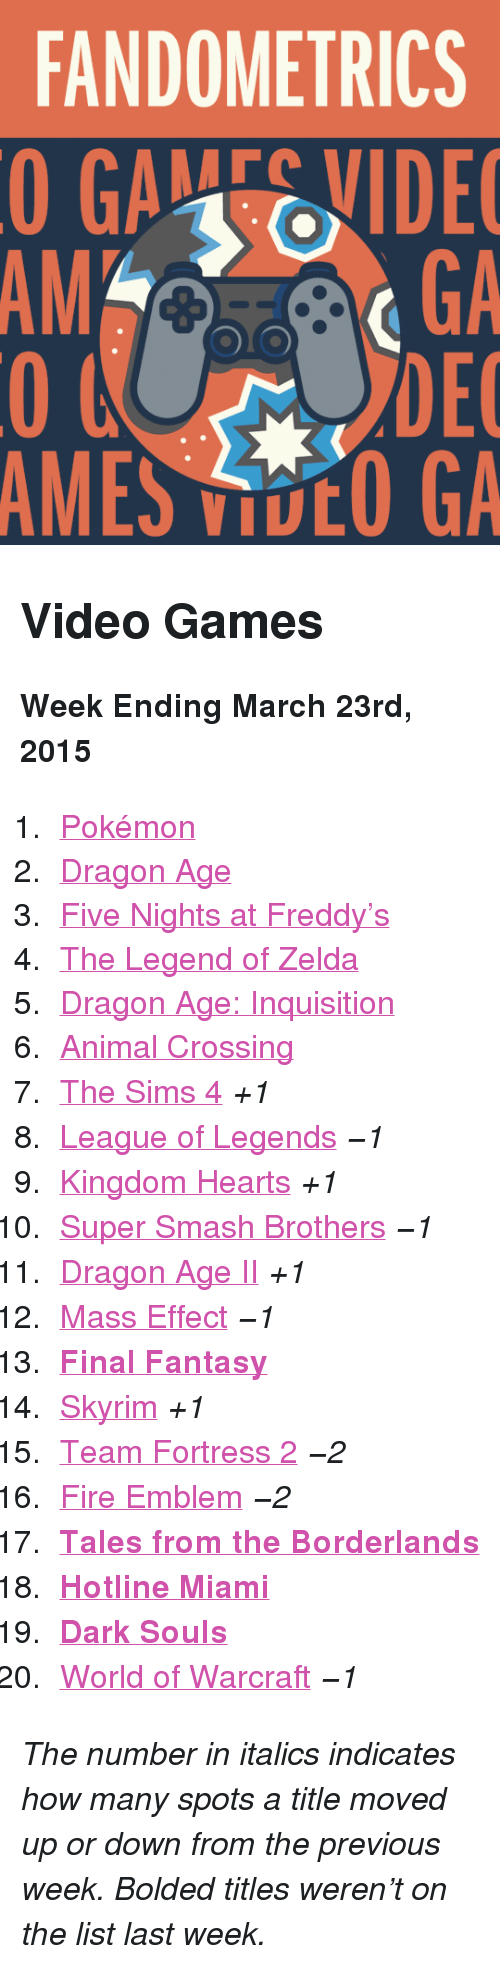 """hotline miami: FANDOMETRICS  GAEVIDE  GA  DEC  AMES VOO GA  AM <h2>Video Games</h2><p><b>Week Ending March 23rd, 2015</b></p><ol><li><a href=""""http://www.tumblr.com/search/pokemon"""">Pokémon</a></li><li><a href=""""http://www.tumblr.com/search/dragon%20age"""">Dragon Age</a></li><li><a href=""""http://www.tumblr.com/search/five%20nights%20at%20freddy's"""">Five Nights at Freddy's</a></li><li><a href=""""http://www.tumblr.com/search/legend%20of%20zelda"""">The Legend of Zelda</a></li><li><a href=""""http://www.tumblr.com/search/dragon%20age%20inquisition"""">Dragon Age: Inquisition</a></li><li><a href=""""http://www.tumblr.com/search/acnl"""">Animal Crossing</a></li><li><a href=""""http://www.tumblr.com/search/sims%204"""">The Sims 4</a> <i>+1</i></li><li><a href=""""http://www.tumblr.com/search/league%20of%20legends"""">League of Legends</a> <i>−1</i></li><li><a href=""""http://www.tumblr.com/search/kingdom%20hearts"""">Kingdom Hearts</a> <i>+1</i></li><li><a href=""""http://www.tumblr.com/search/super%20smash%20bros"""">Super Smash Brothers</a> <i>−1</i></li><li><a href=""""http://www.tumblr.com/search/dragon%20age%202"""">Dragon Age II</a> <i>+1</i></li><li><a href=""""http://www.tumblr.com/search/mass%20effect"""">Mass Effect</a> <i>−1</i></li><li><a href=""""http://www.tumblr.com/search/final%20fantasy""""><b>Final Fantasy</b></a></li><li><a href=""""http://www.tumblr.com/search/skyrim"""">Skyrim</a> <i>+1</i></li><li><a href=""""http://www.tumblr.com/search/tf2"""">Team Fortress 2</a> <i>−2</i></li><li><a href=""""http://www.tumblr.com/search/fire%20emblem"""">Fire Emblem</a> <i>−2</i></li><li><a href=""""http://www.tumblr.com/search/tales%20from%20the%20borderlands""""><b>Tales from the Borderlands</b></a></li><li><a href=""""http://www.tumblr.com/search/hotline%20miami""""><b>Hotline Miami</b></a></li><li><a href=""""http://www.tumblr.com/search/dark%20souls""""><b>Dark Souls</b></a></li><li><a href=""""http://www.tumblr.com/search/world%20of%20warcraft"""">World of Warcraft</a> <i>−1</i></li></ol><p><i>The number in italics indicates how many spots a title moved up or down"""